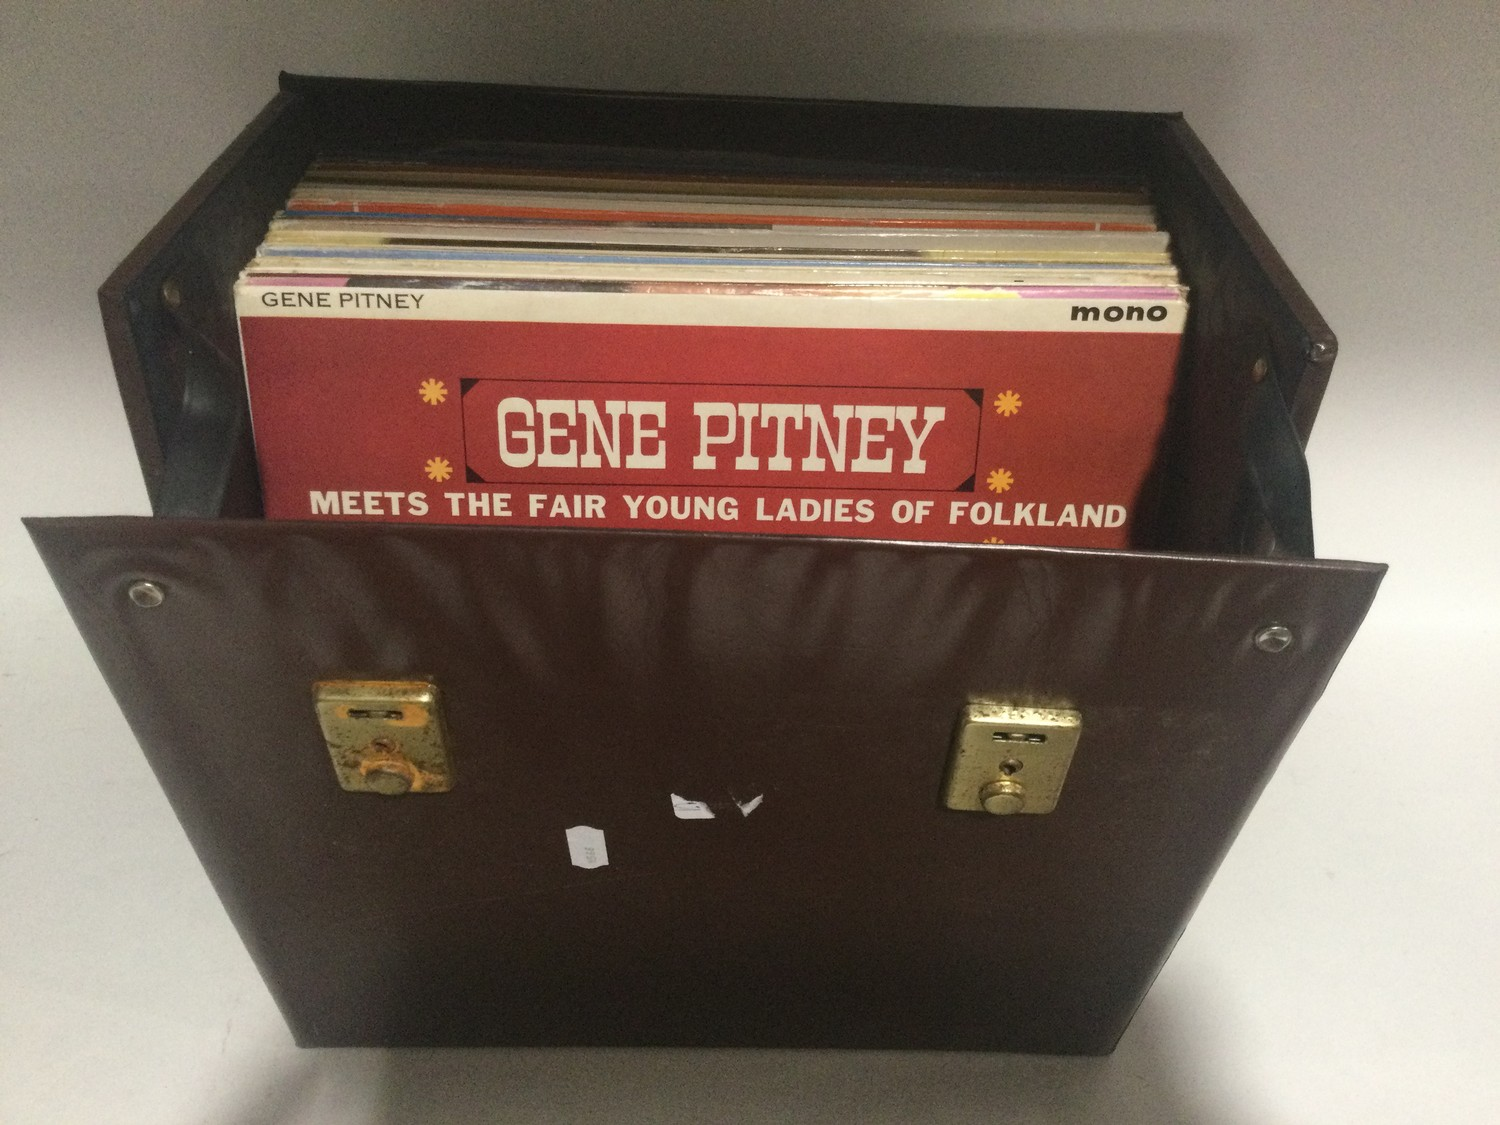 GENE PITNEY VINYL LP RECORDS. A NICE COLLECTION OF VARIOUS 60?s and 70?s albums on English and US